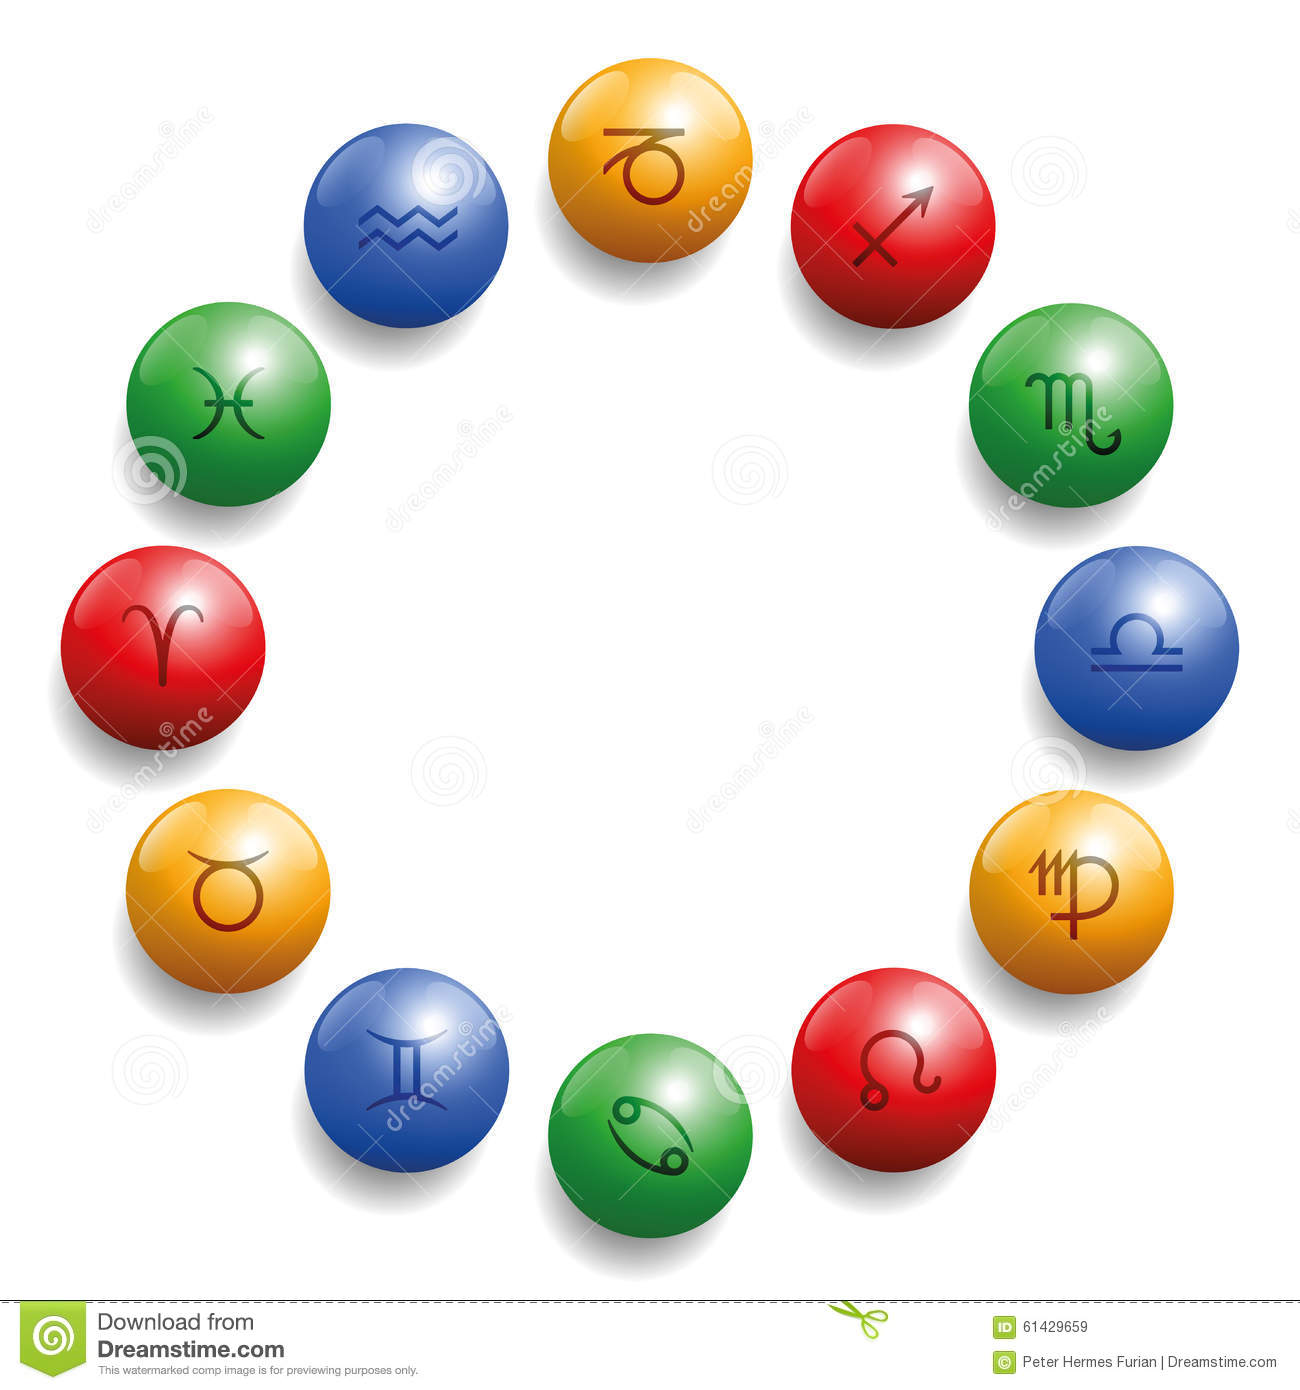 Stock Illustration Astrology Radix Symbols Circle Balls Twelve Colored Glossy Their Appropriate Element Color Red Fire Ocher Earth Blue Image61429659